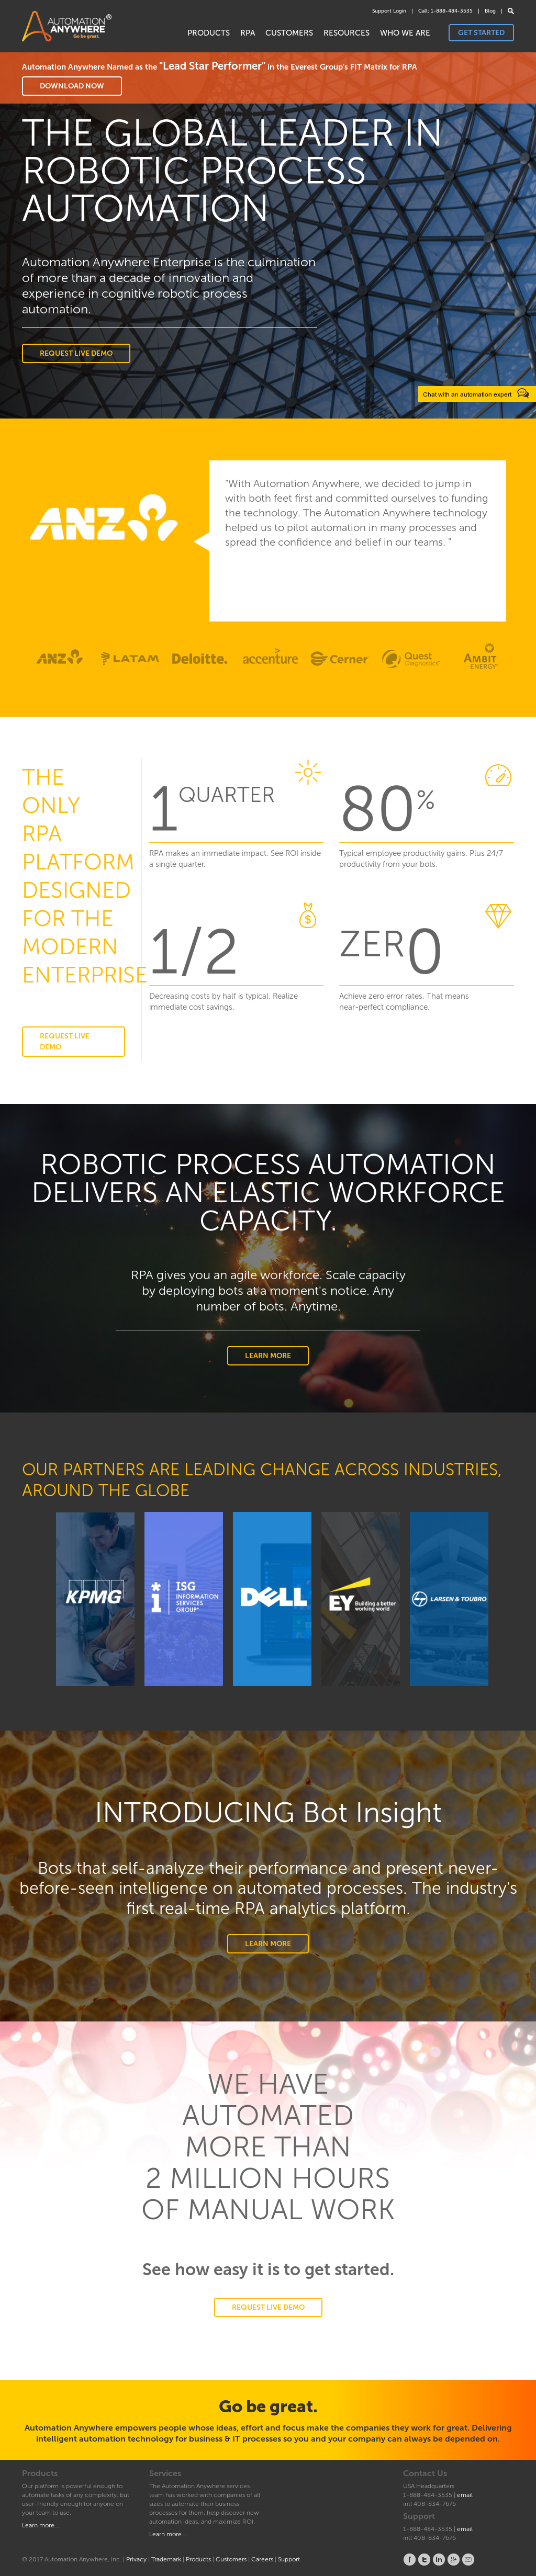 Automation Anywhere Competitors, Revenue and Employees